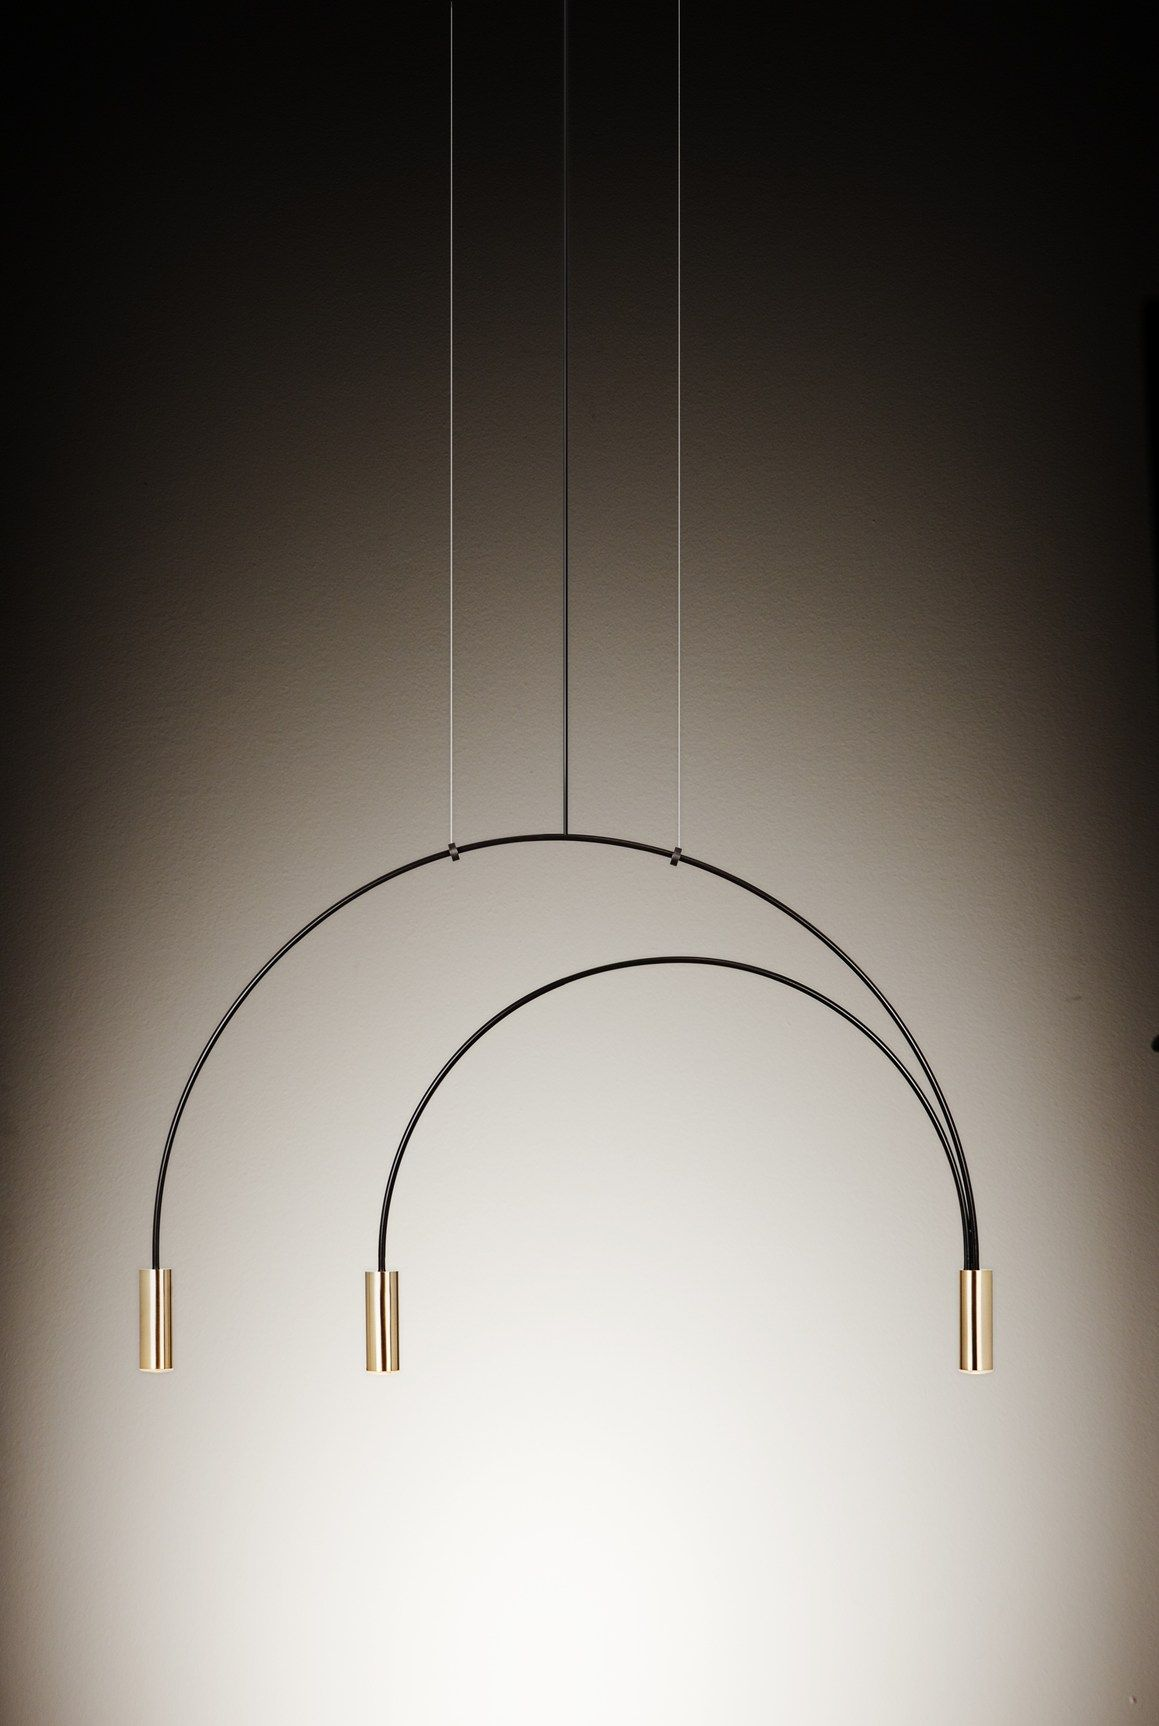 Volta lighting in balance An ethereal presence by Estiluz  By